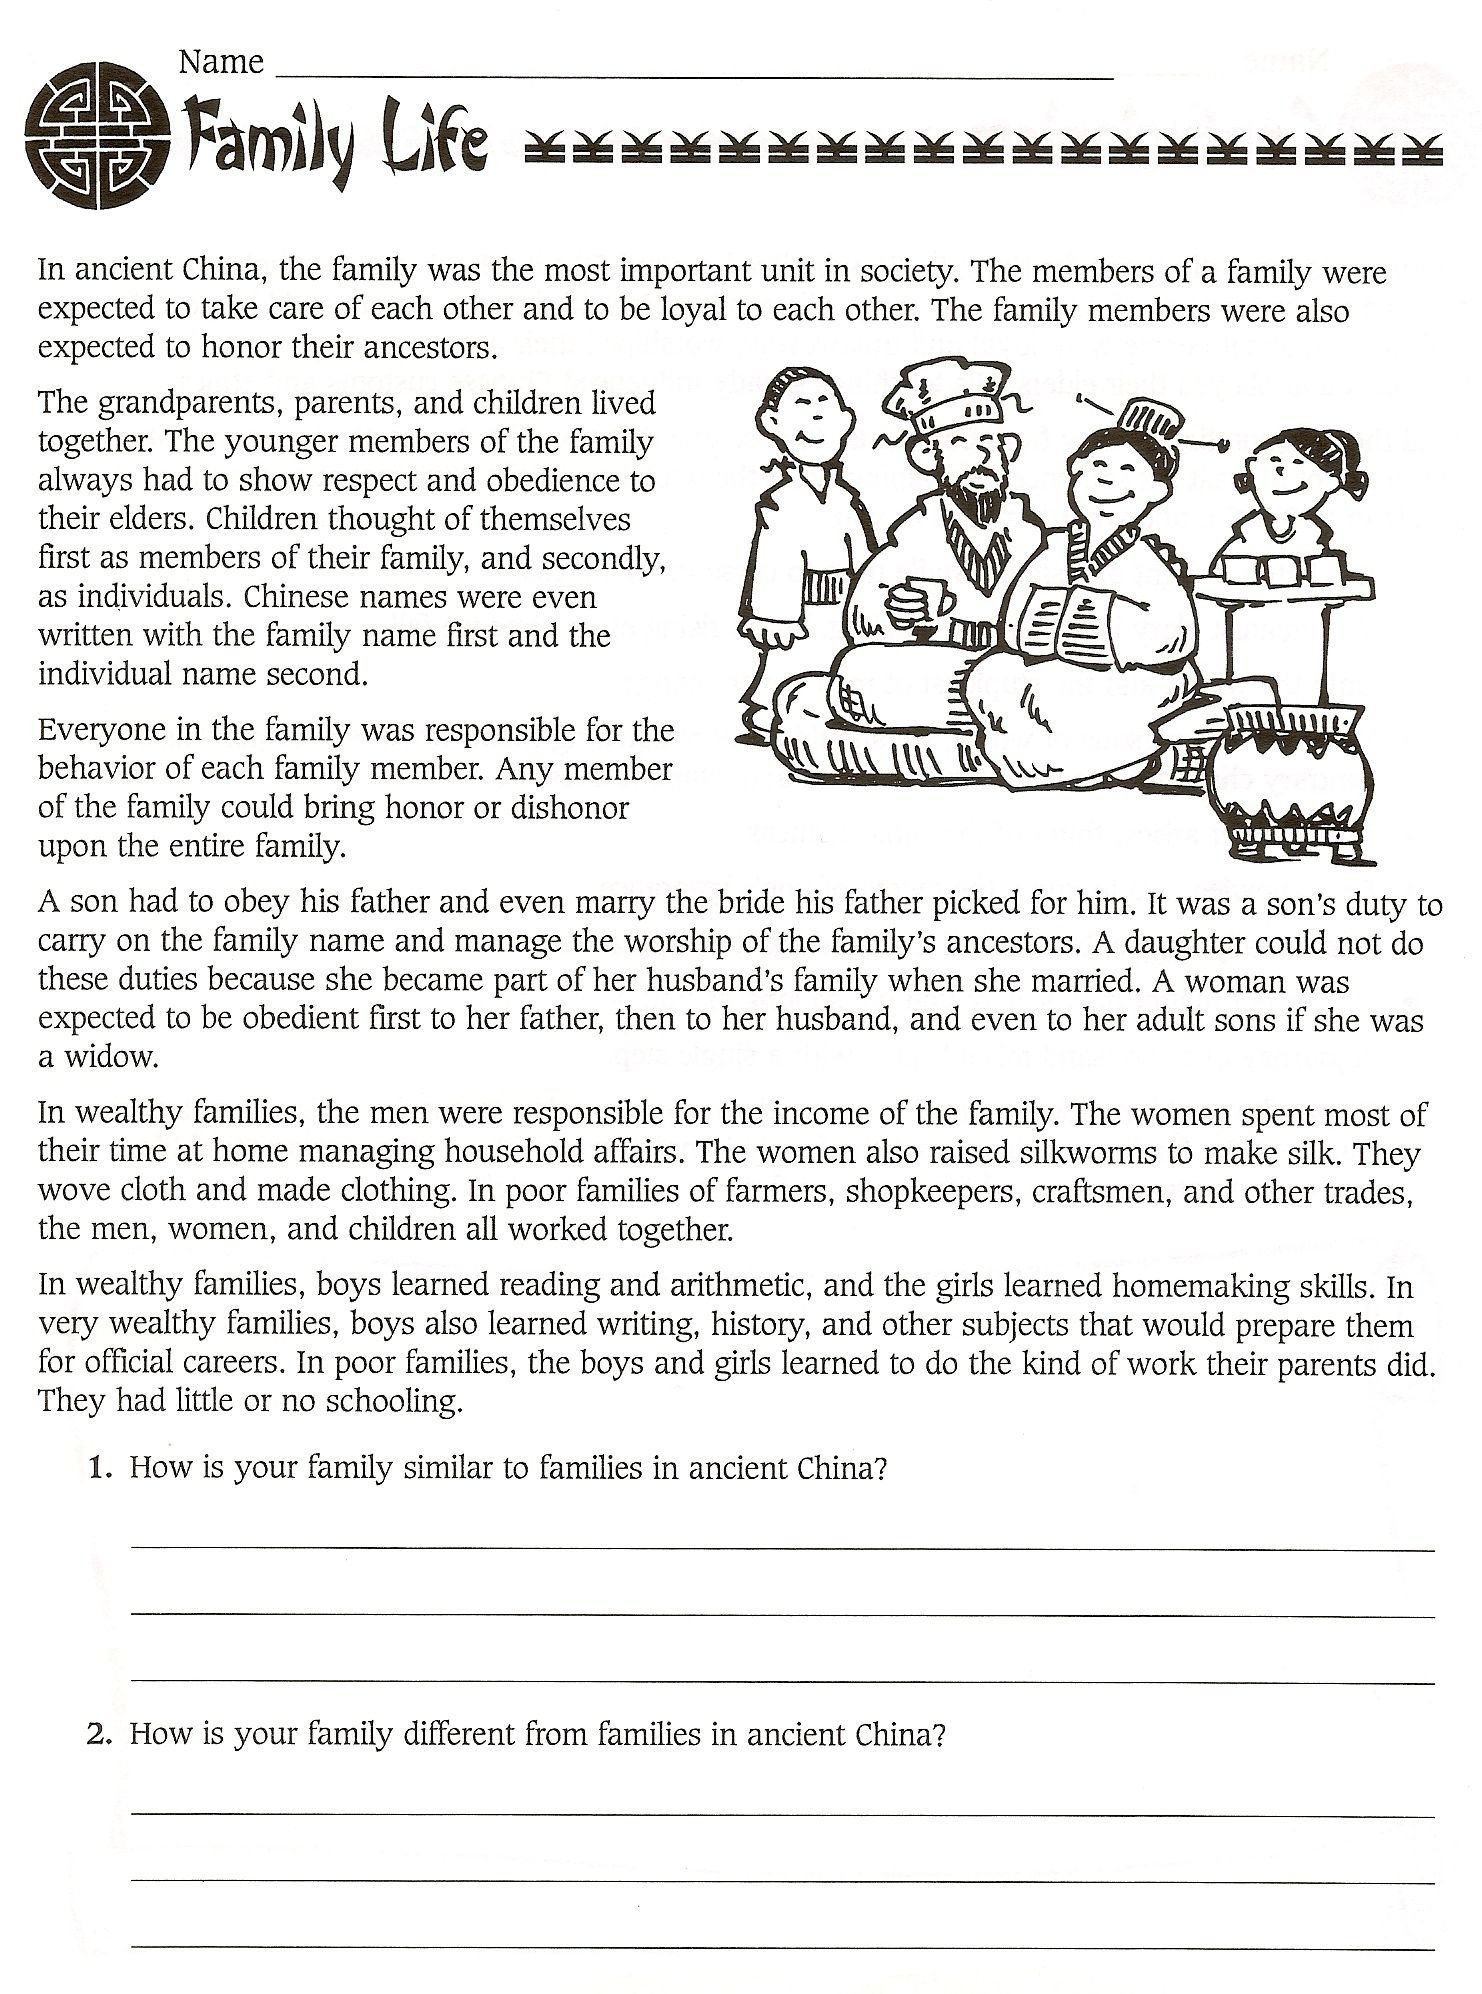 Hiset social Studies Worksheets Math Homework Tutor Spring Math Worksheets for 1st Grade